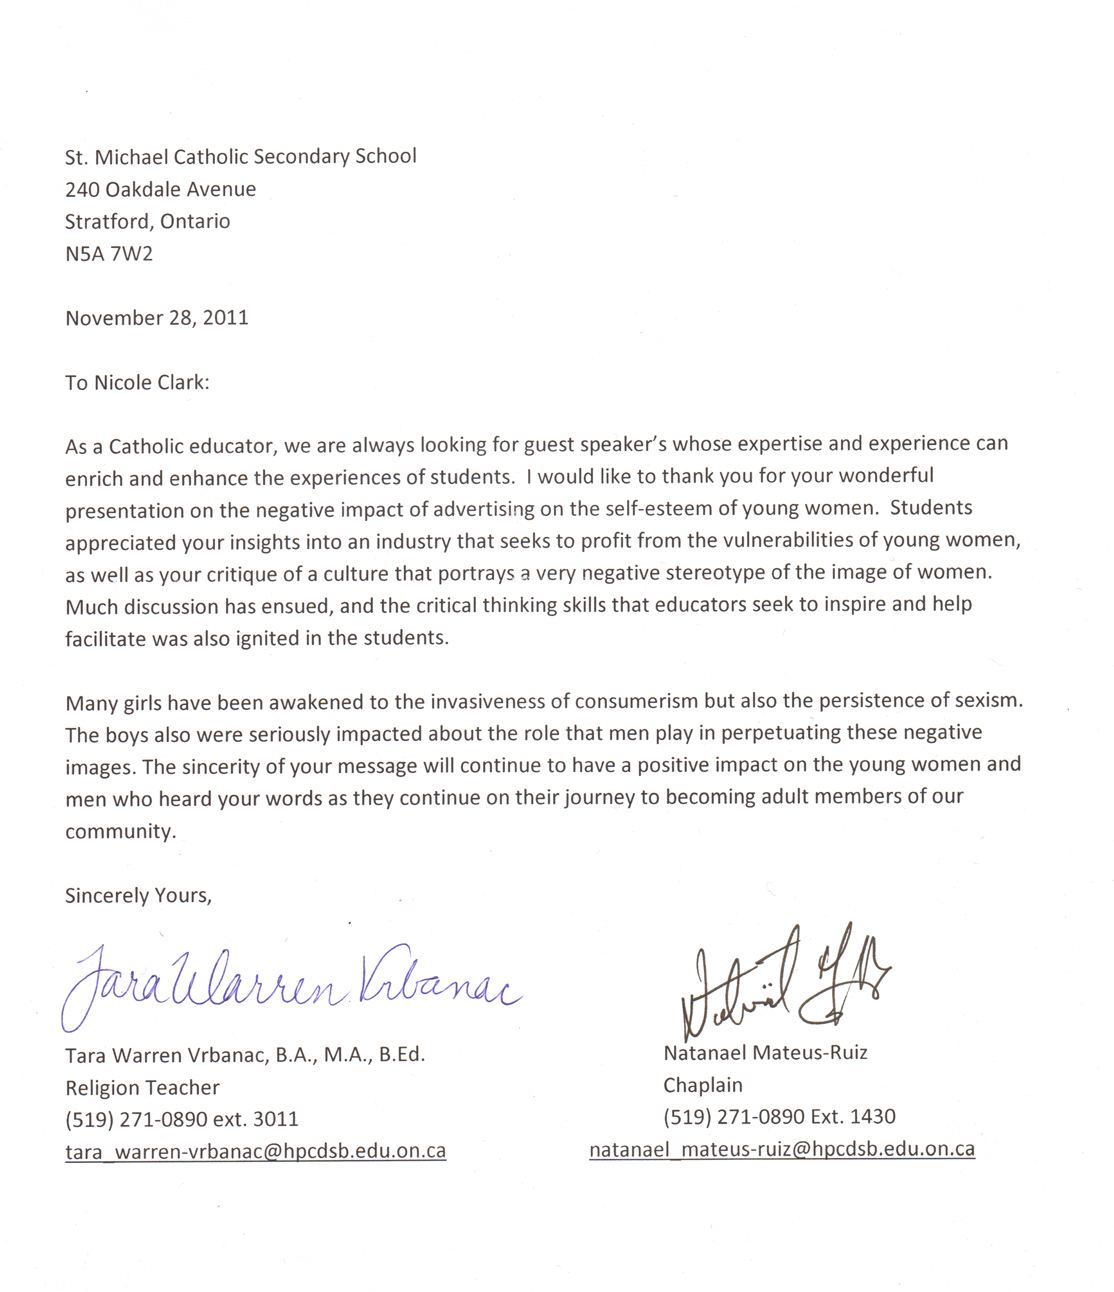 scholarship essay prompts cover letter for catholic teacher cover letter templates cover letter templates gates millenium - Cholarship Cover Letter